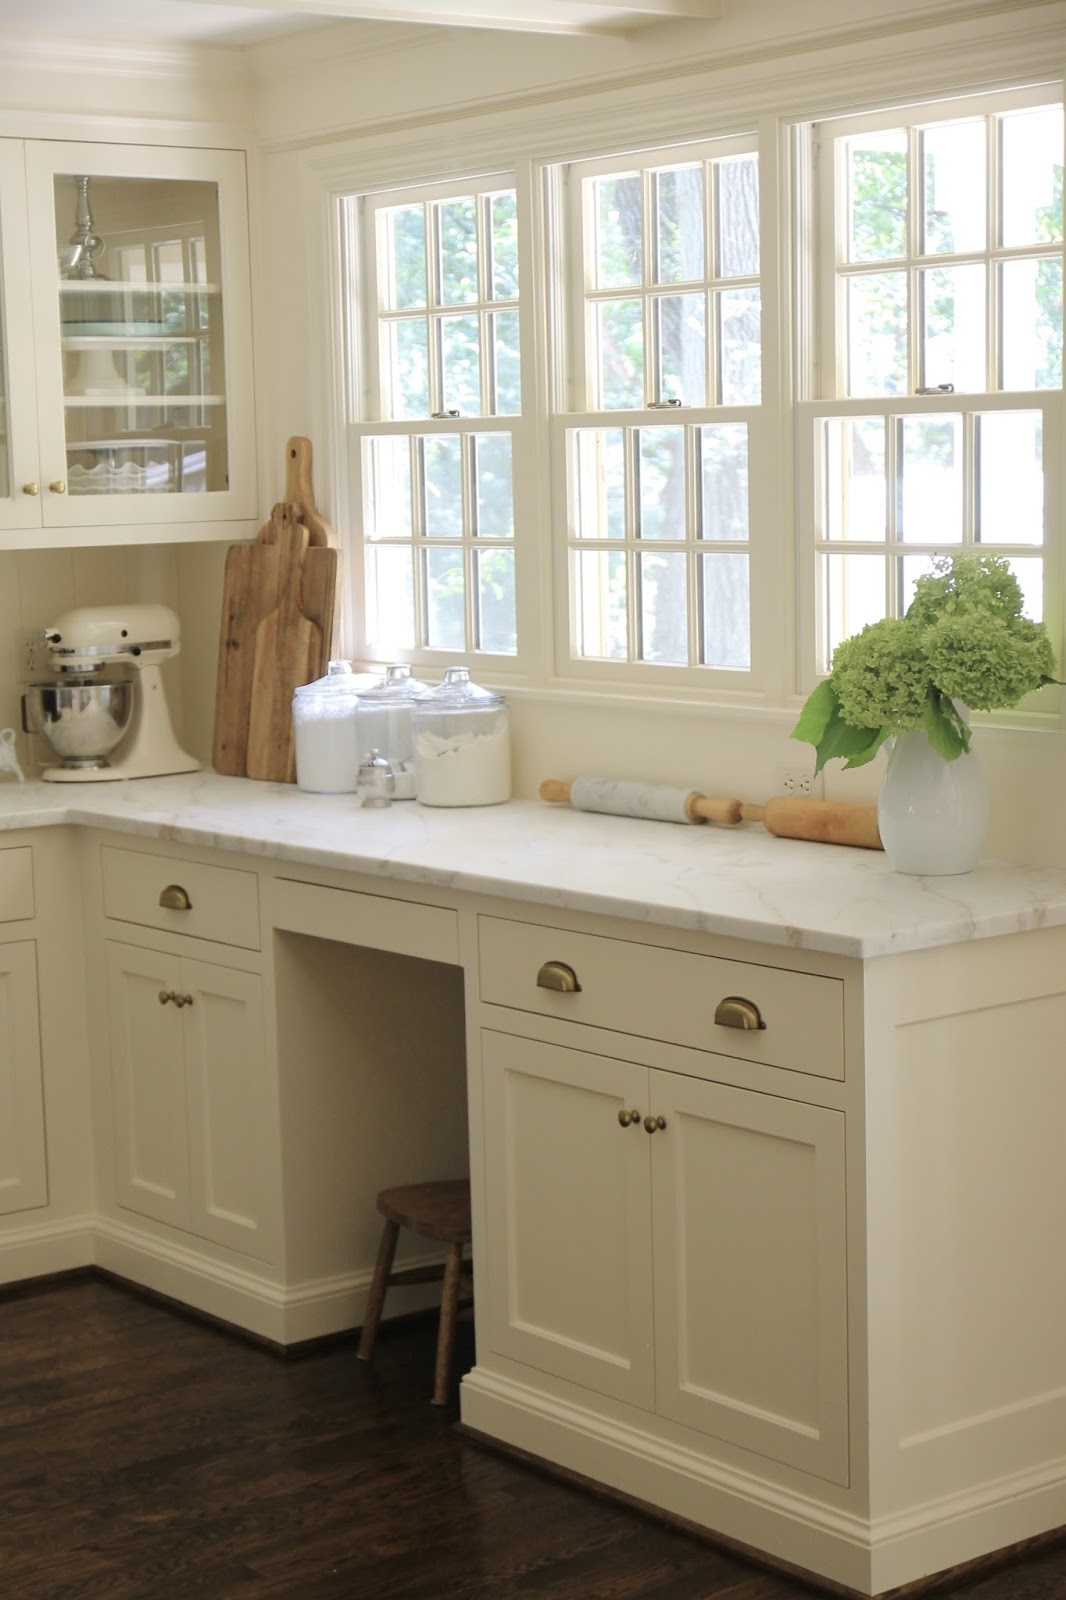 Our Classic White Kitchen Design Marble Countertops Wood Island Top Brass Pulls Lanterns Jenny Steffens Hobick